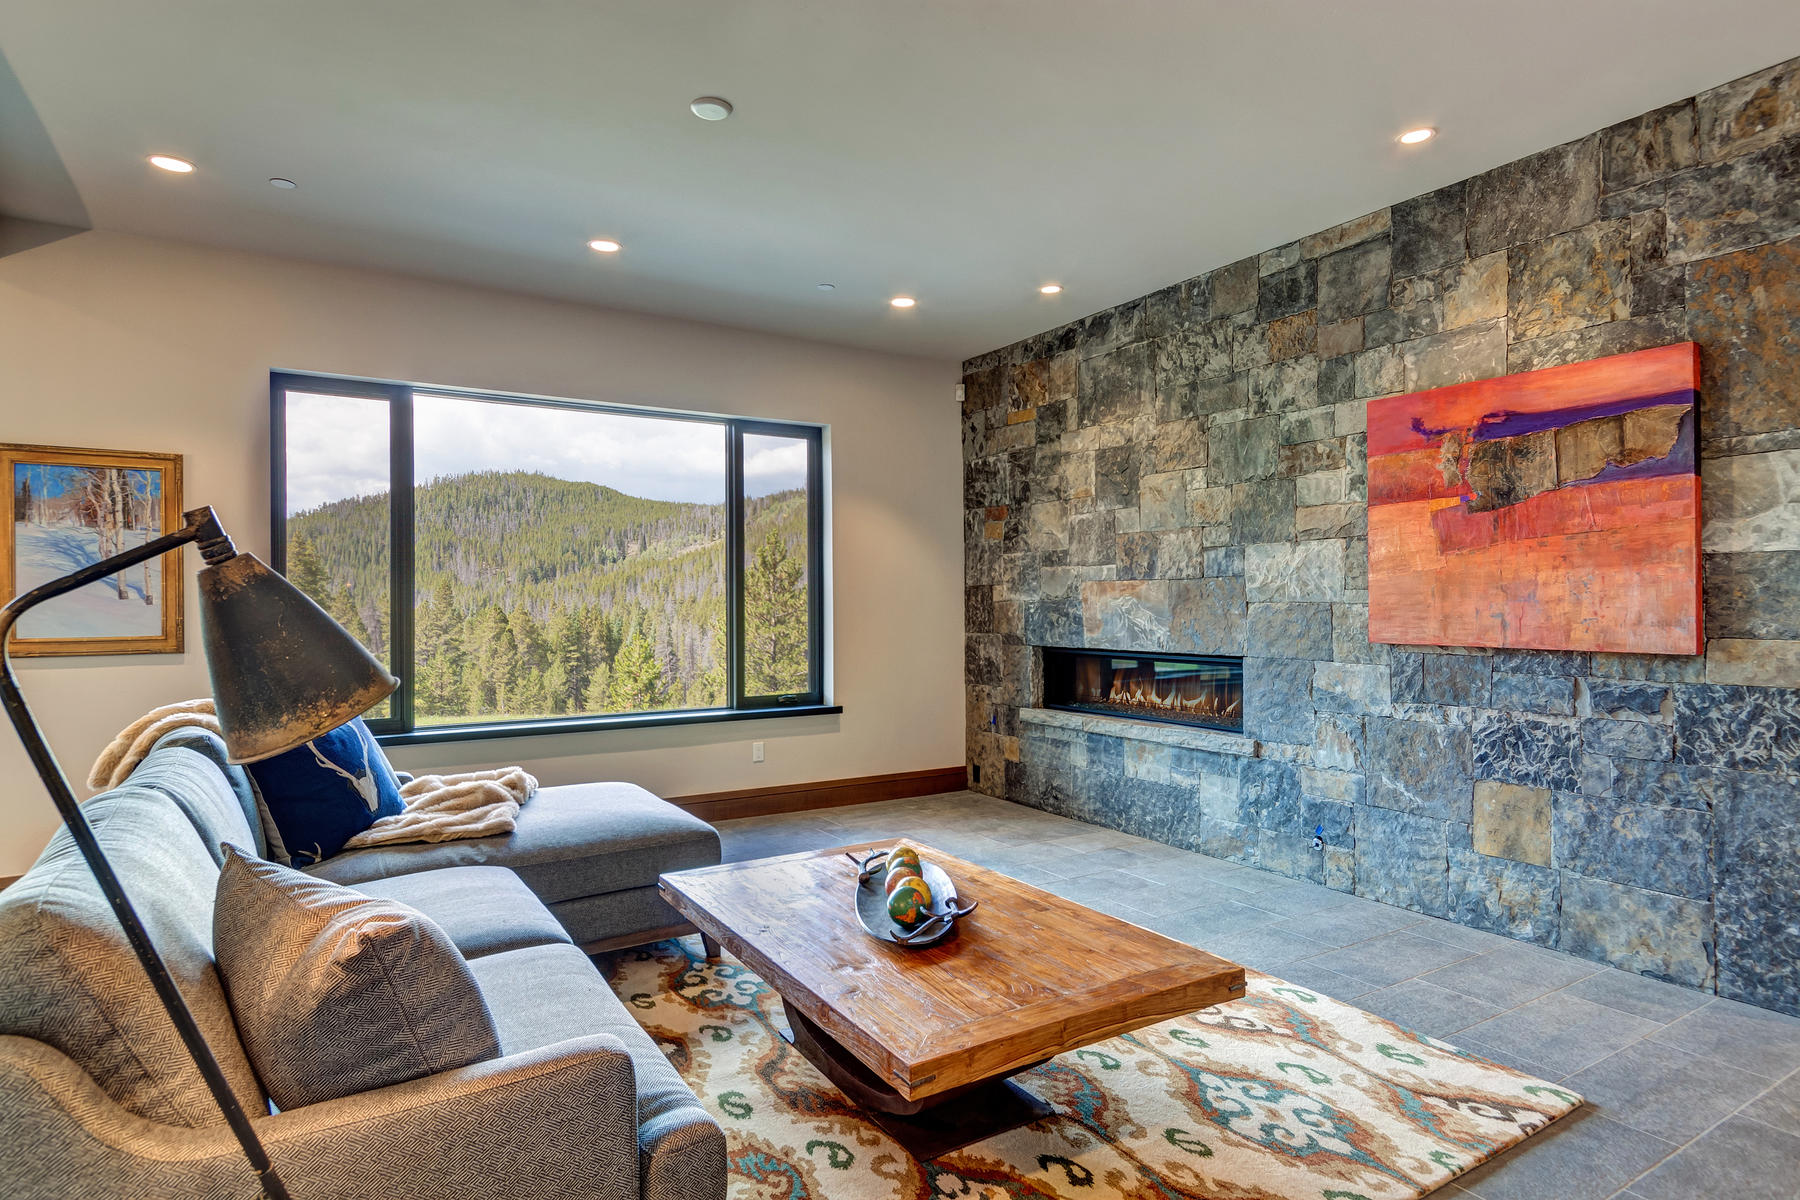 Additional photo for property listing at Muggins Gulch 164 Imperial Way Breckenridge, Colorado 80424 United States